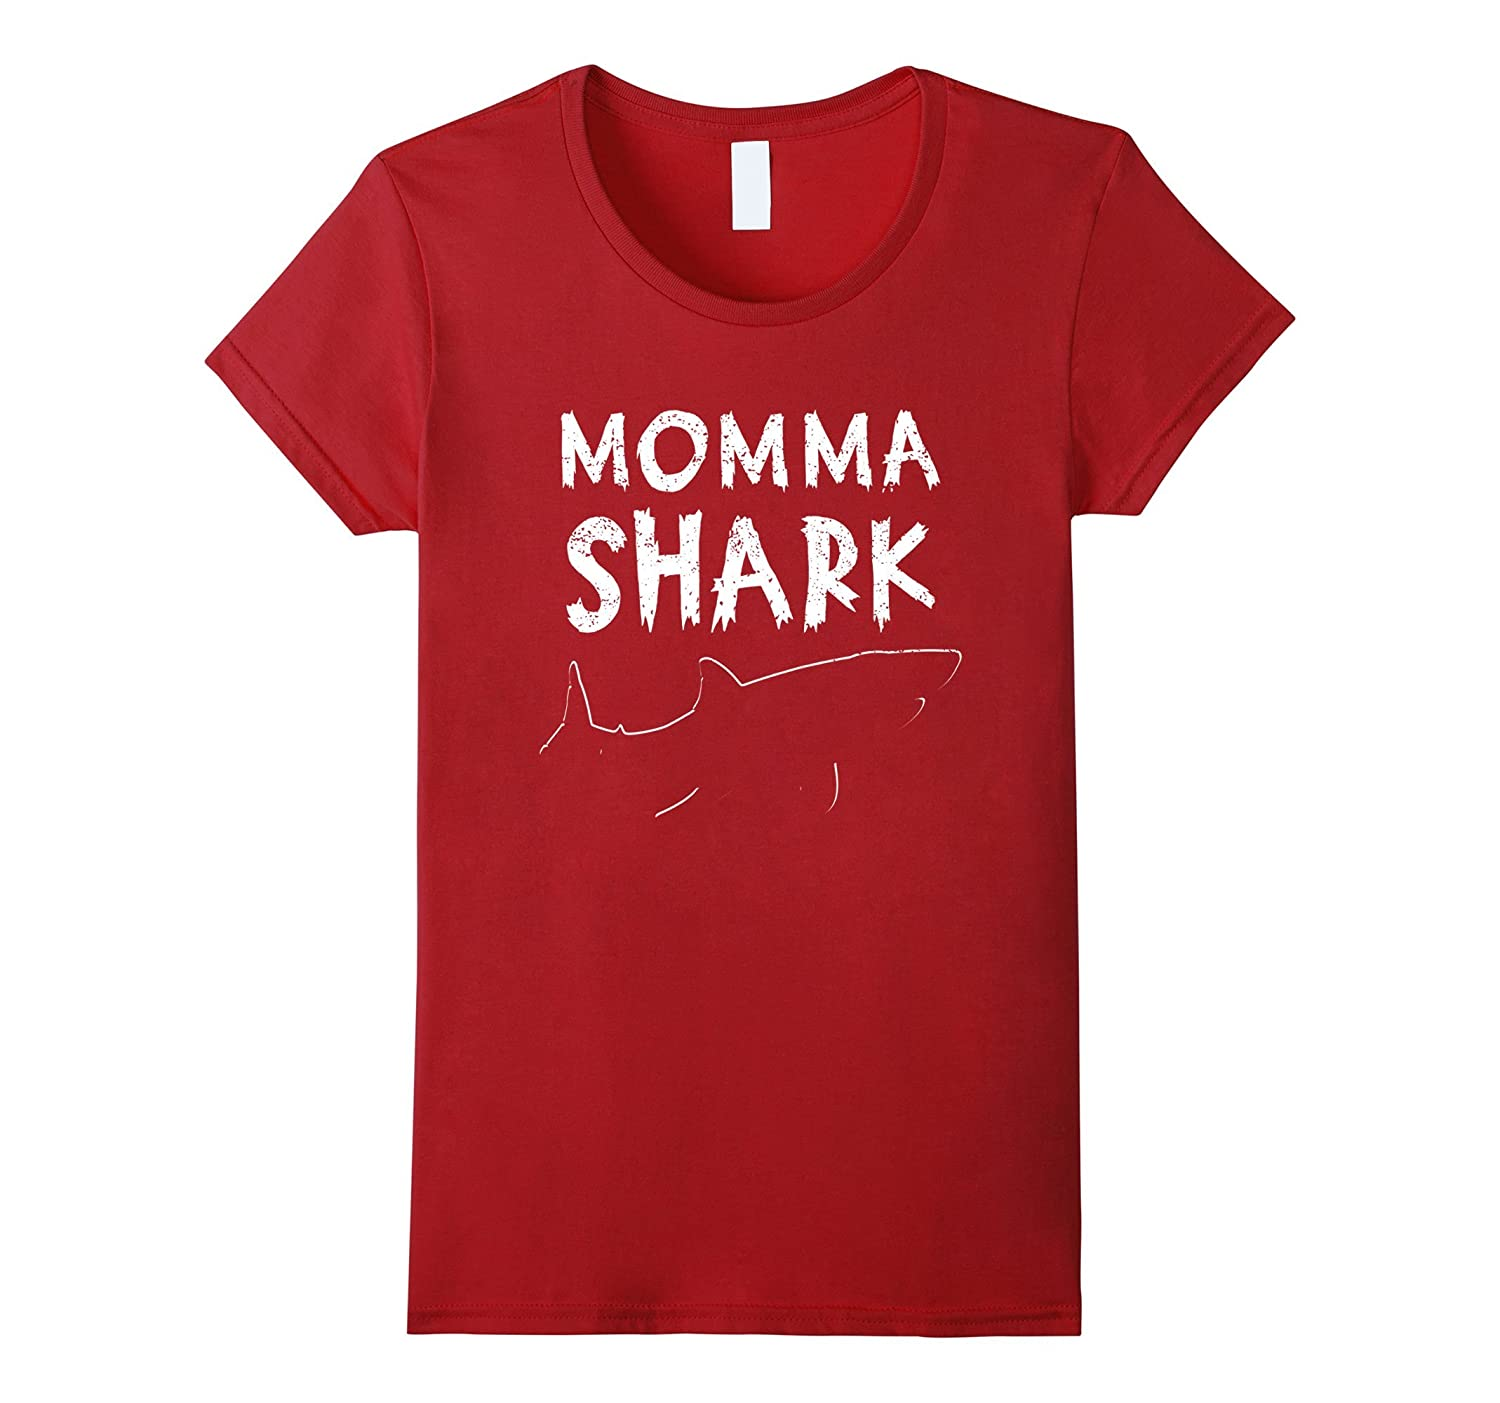 Momma Shark T-Shirt, Shark Lover Shirt